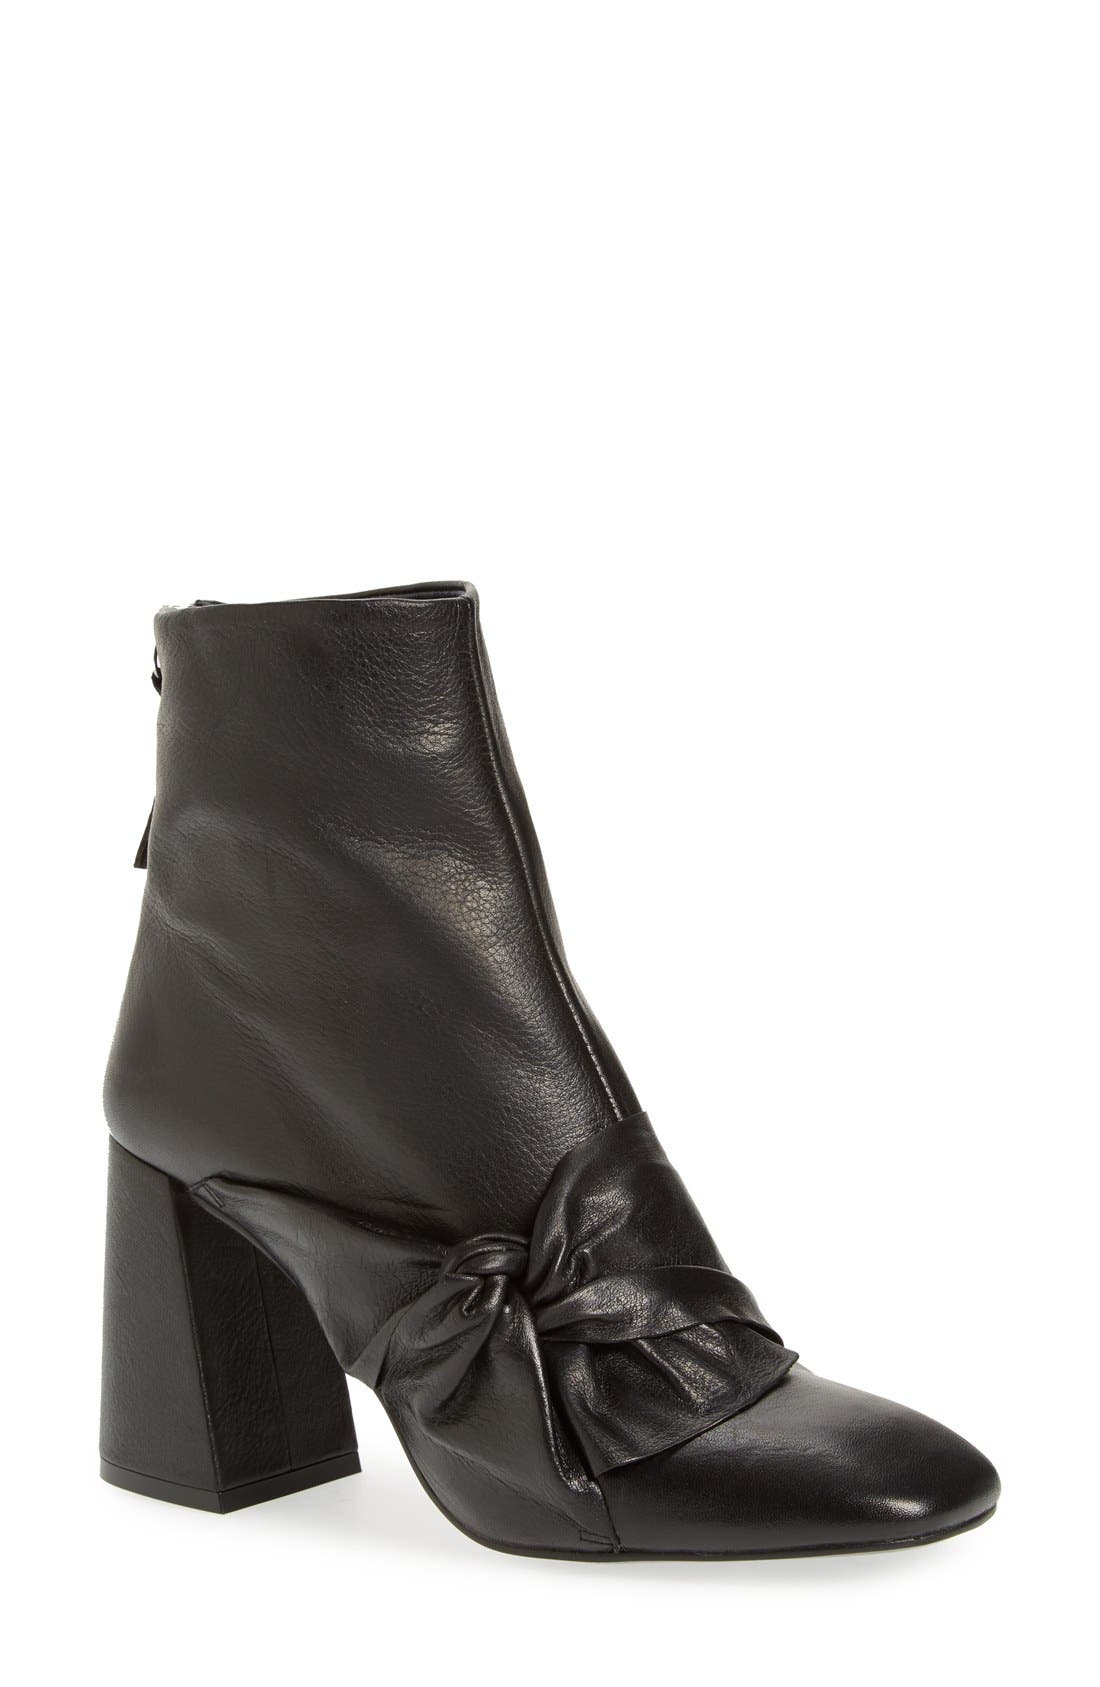 Main Image - Topshop 'Bow Monroe' Knotted Bootie (Women)